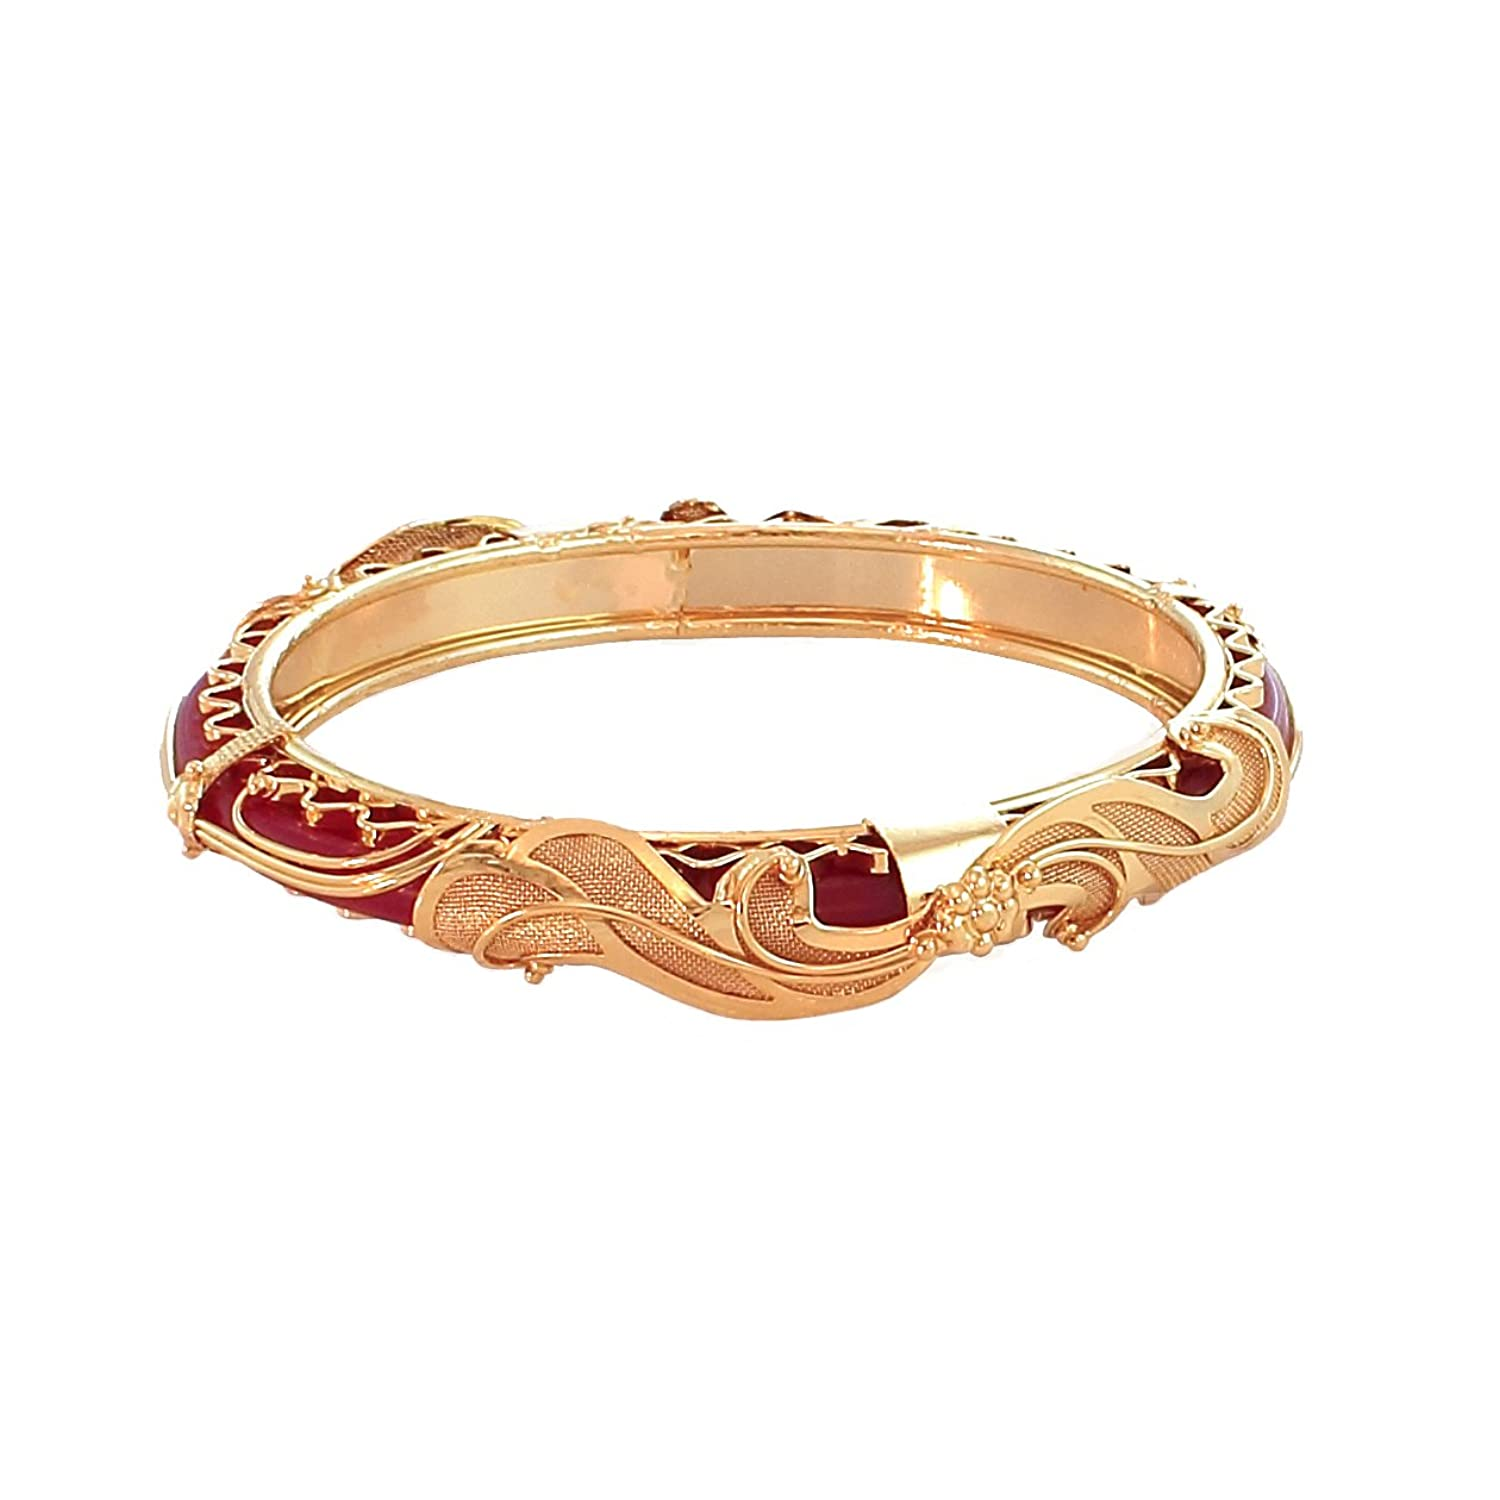 Buy Shreehari Jewellers Round Gold Plated Bangle for Women Online ...